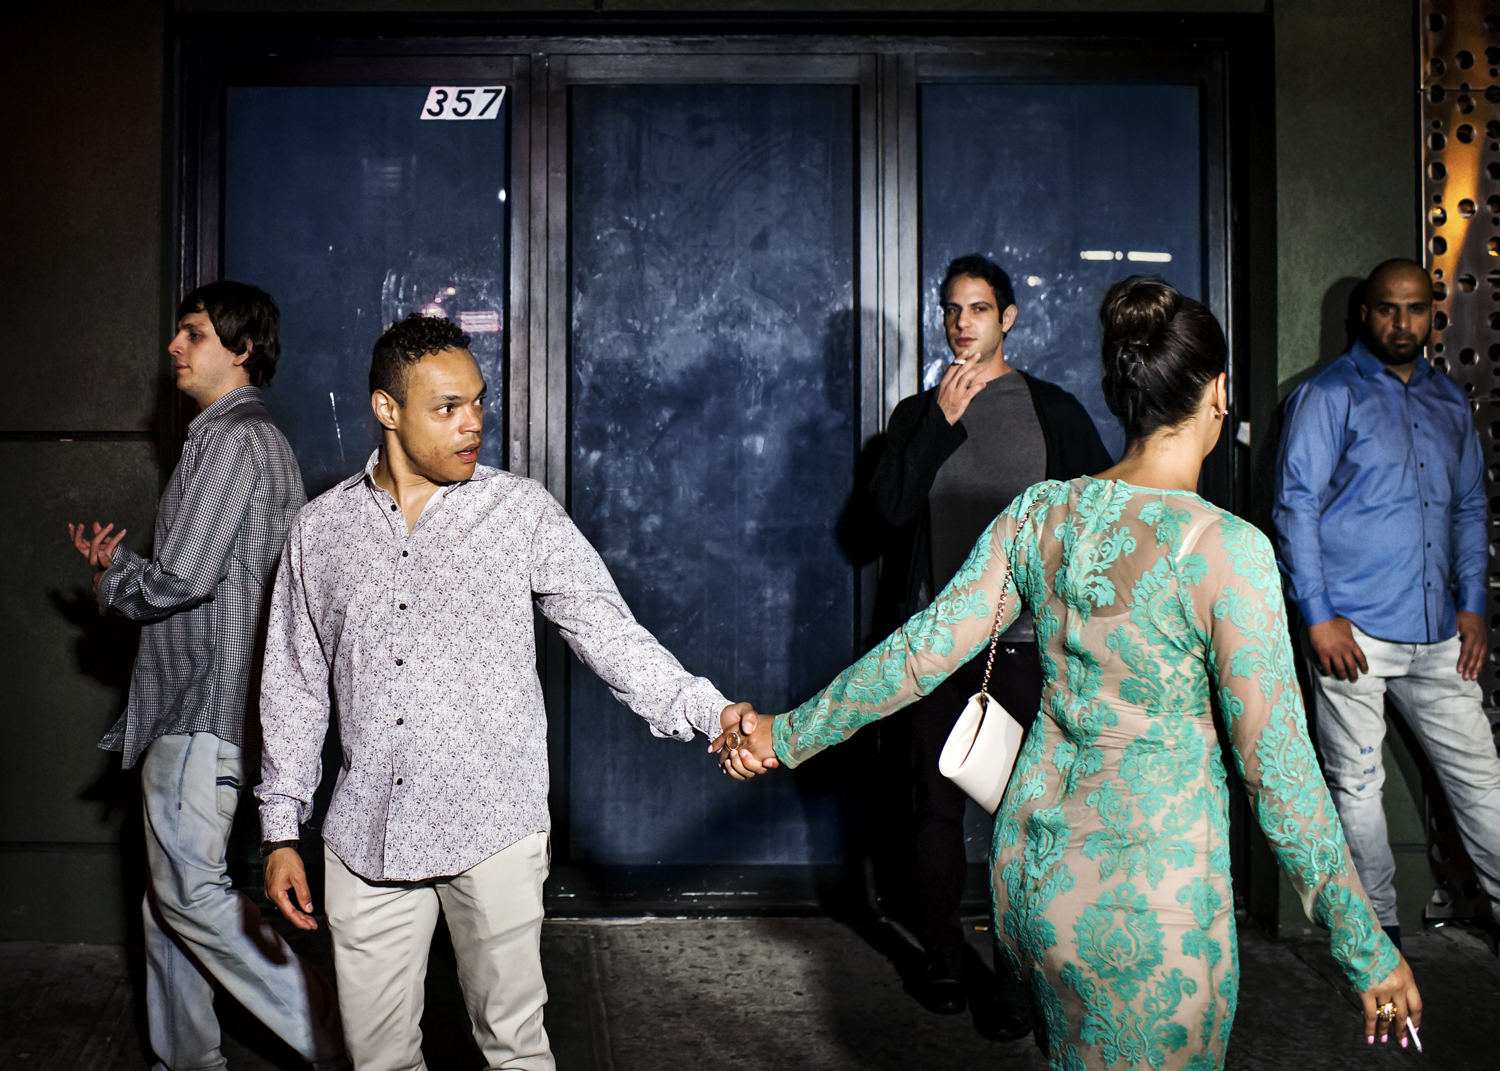 A man grabs a passing woman by the hand in front of the Dream Hotel in September 2015.